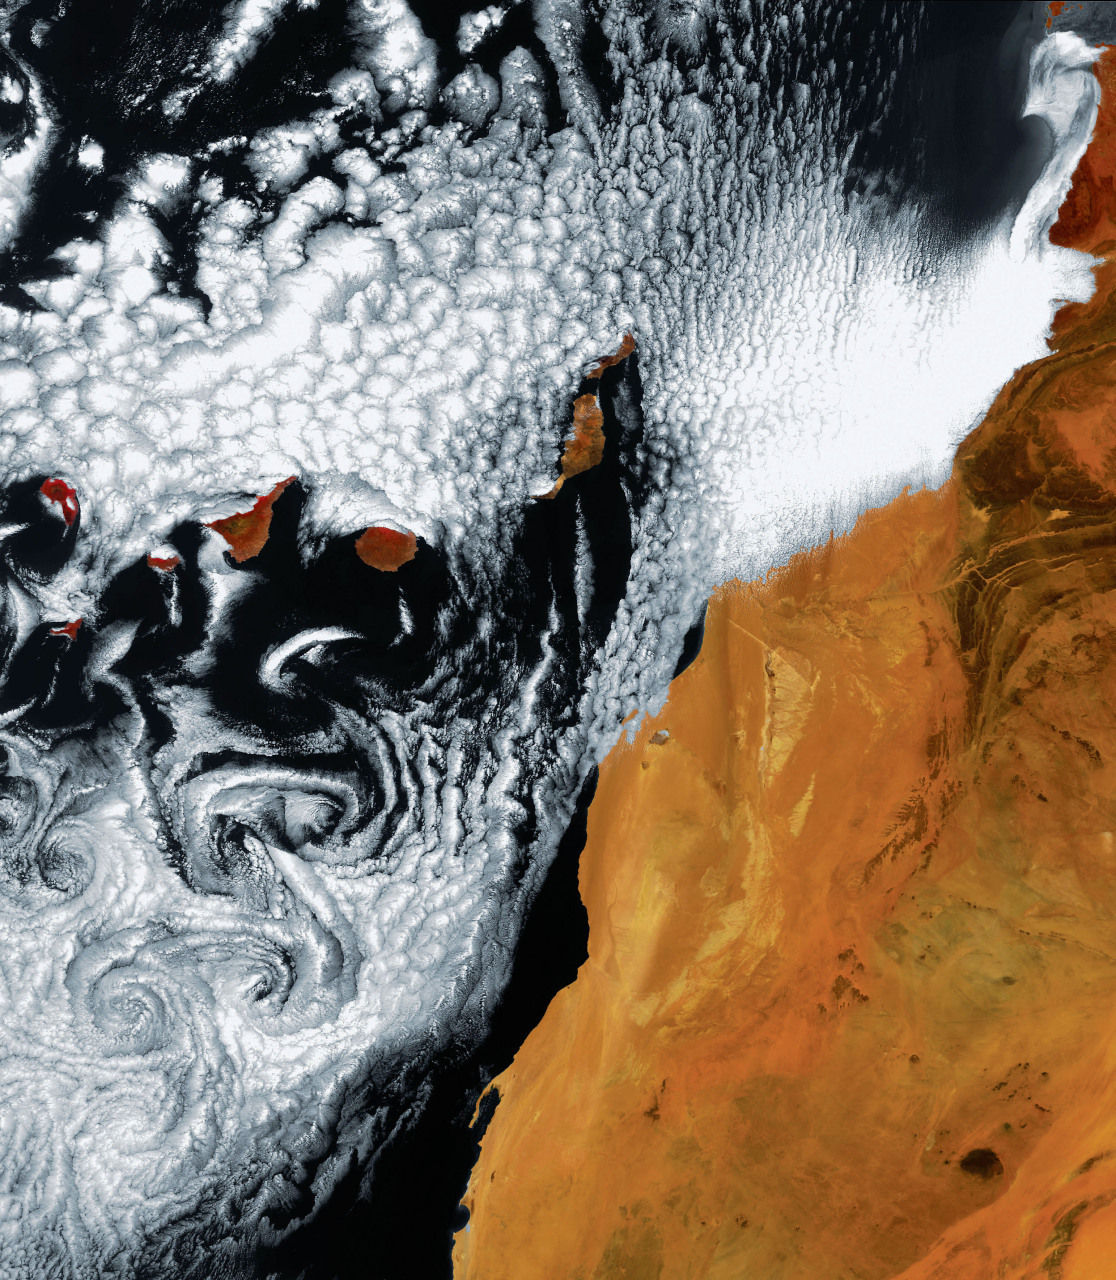 A satellite image of the Canary Islands with unique cloud formations, created by 'Von Karman vortices', off the coast of Africa (right) in the Atlantic Ocean. These vortices, named after aeronautical engineer Theodore von Karman, form as air flows around an object in its path, causing it to separate and create eddies in its wake. The clockwise and counter-clockwise spirals in this image were created as wind blowing from the north over the Atlantic was disturbed by the archipelago. The islands are (left to right): El Hierro, La Palma, La Gomera, Tenerife, Gran Canaria, Fuerteventura and Lanzarote. © ESA